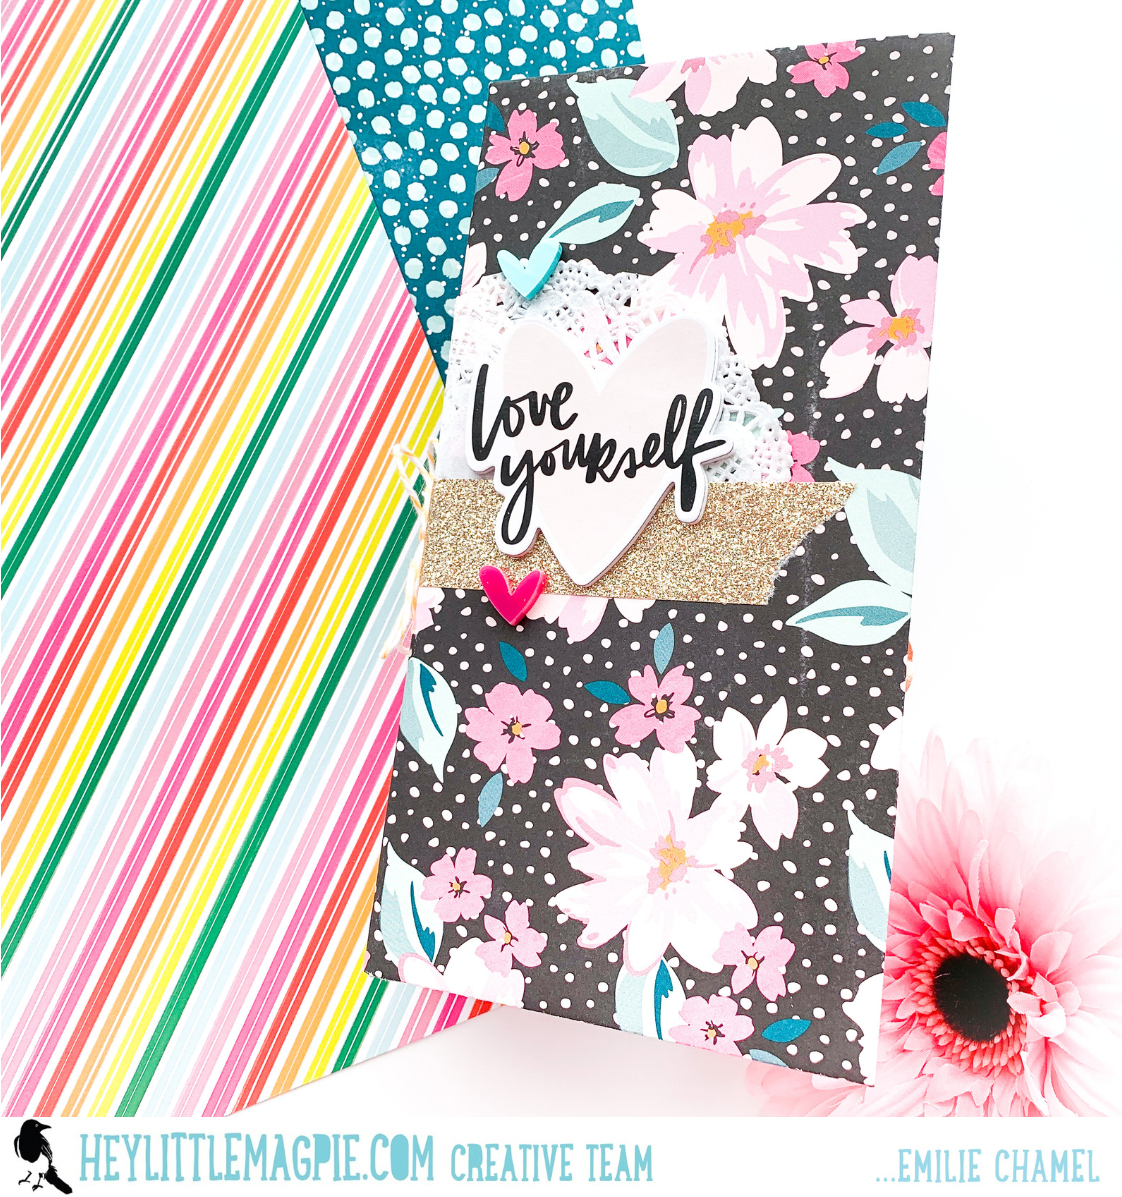 BOLD AND BRAVE – AMY TANGERINE – JOURNAL BY Emilie Chamel